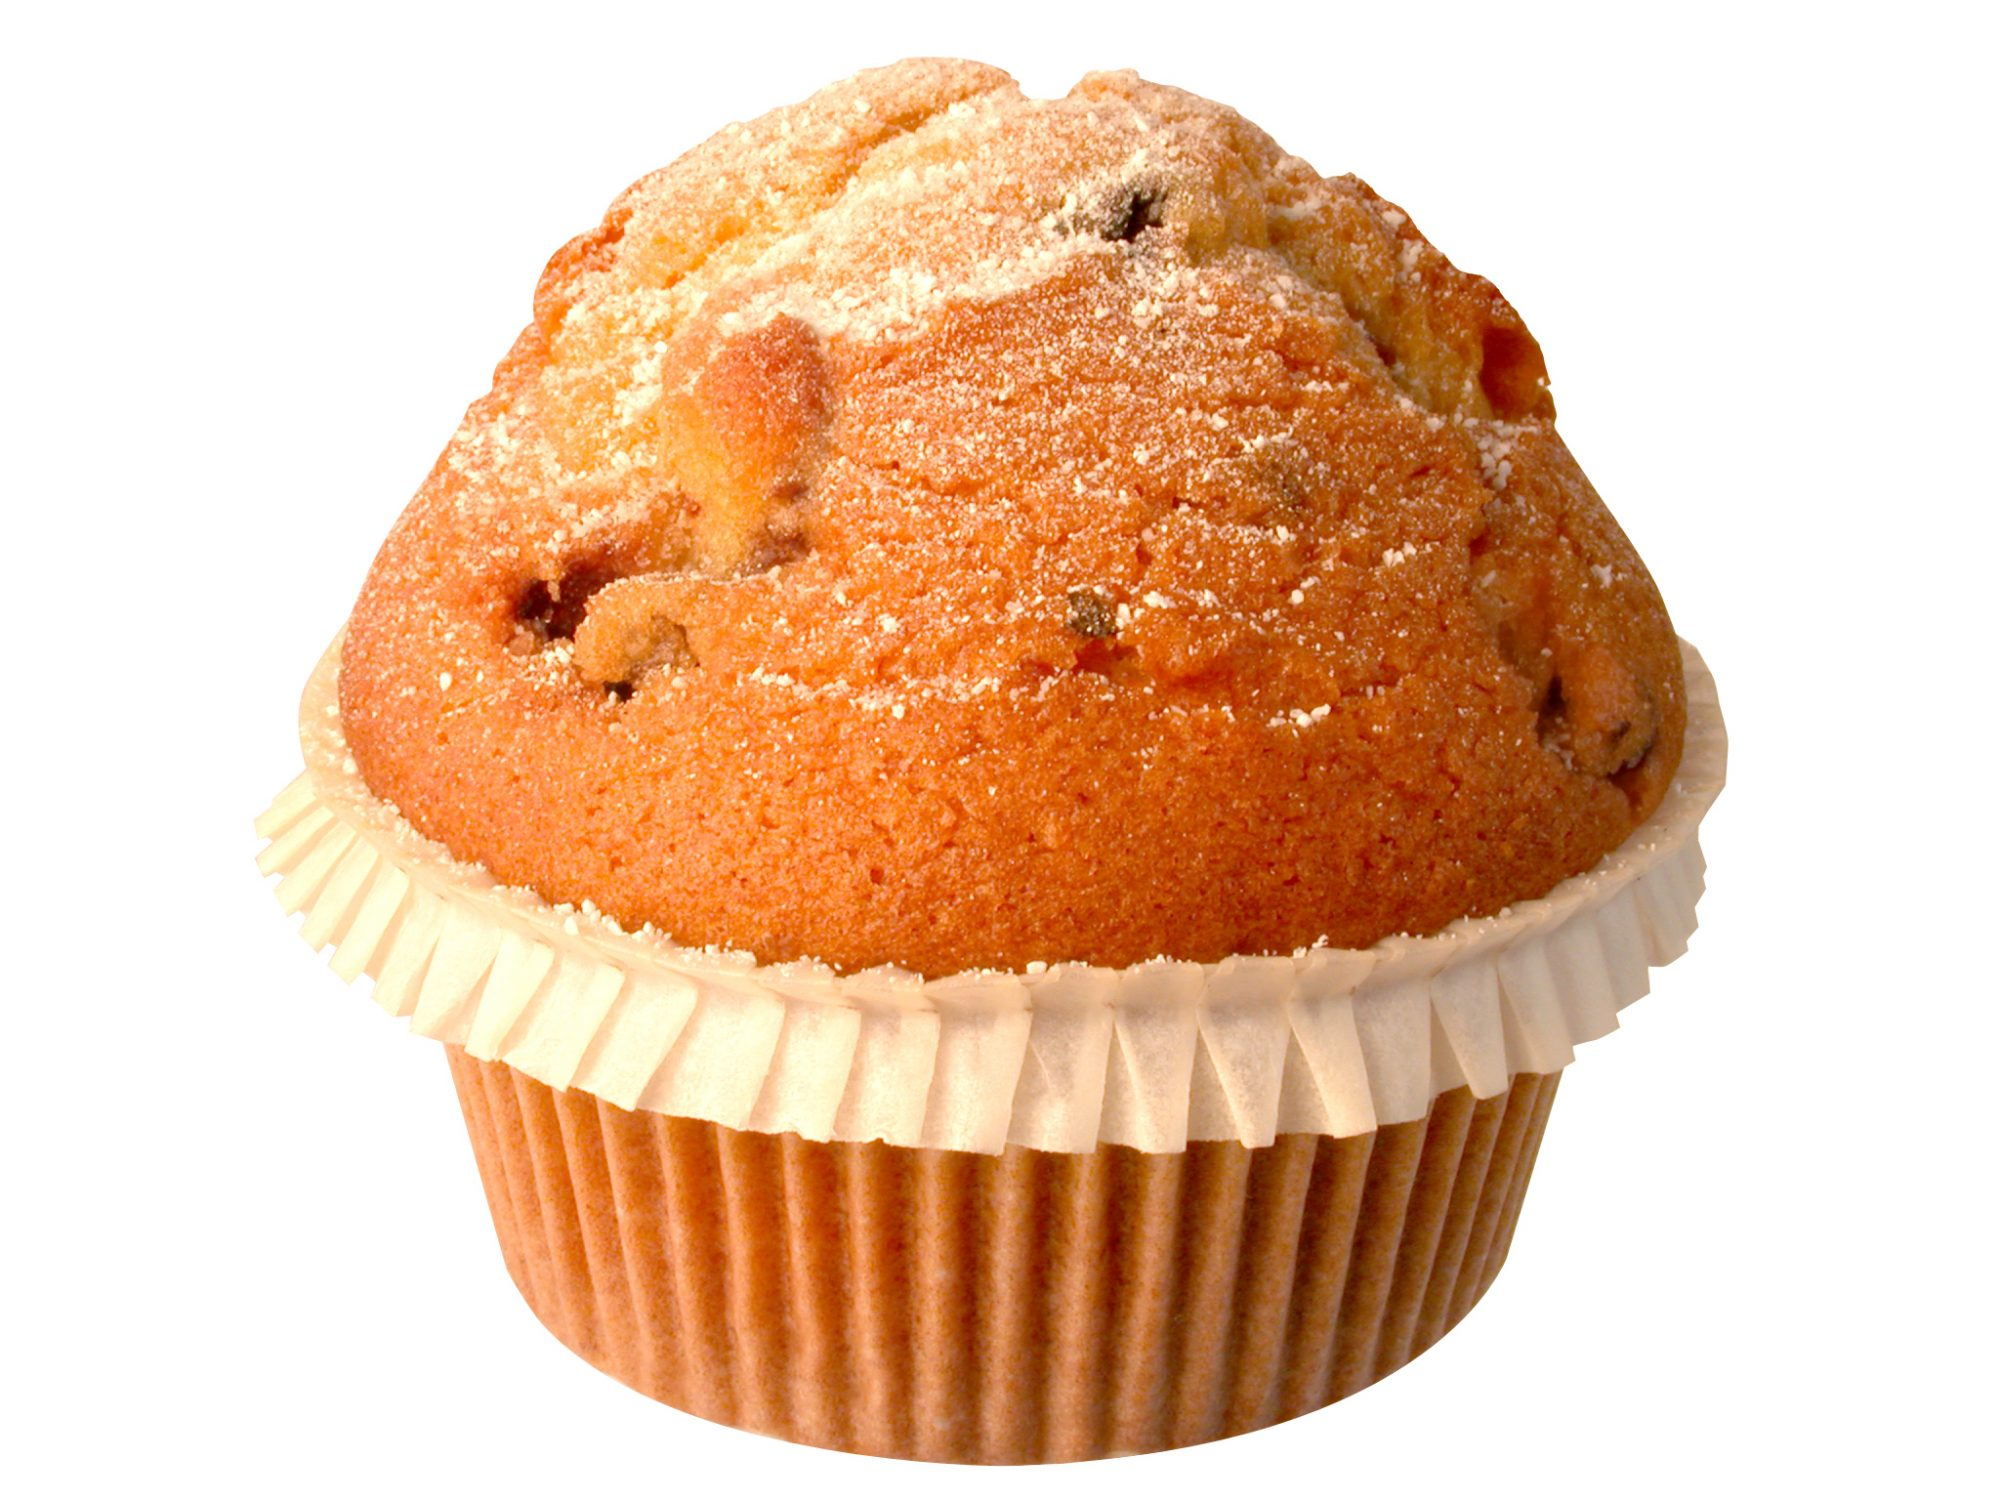 getty-muffin-image